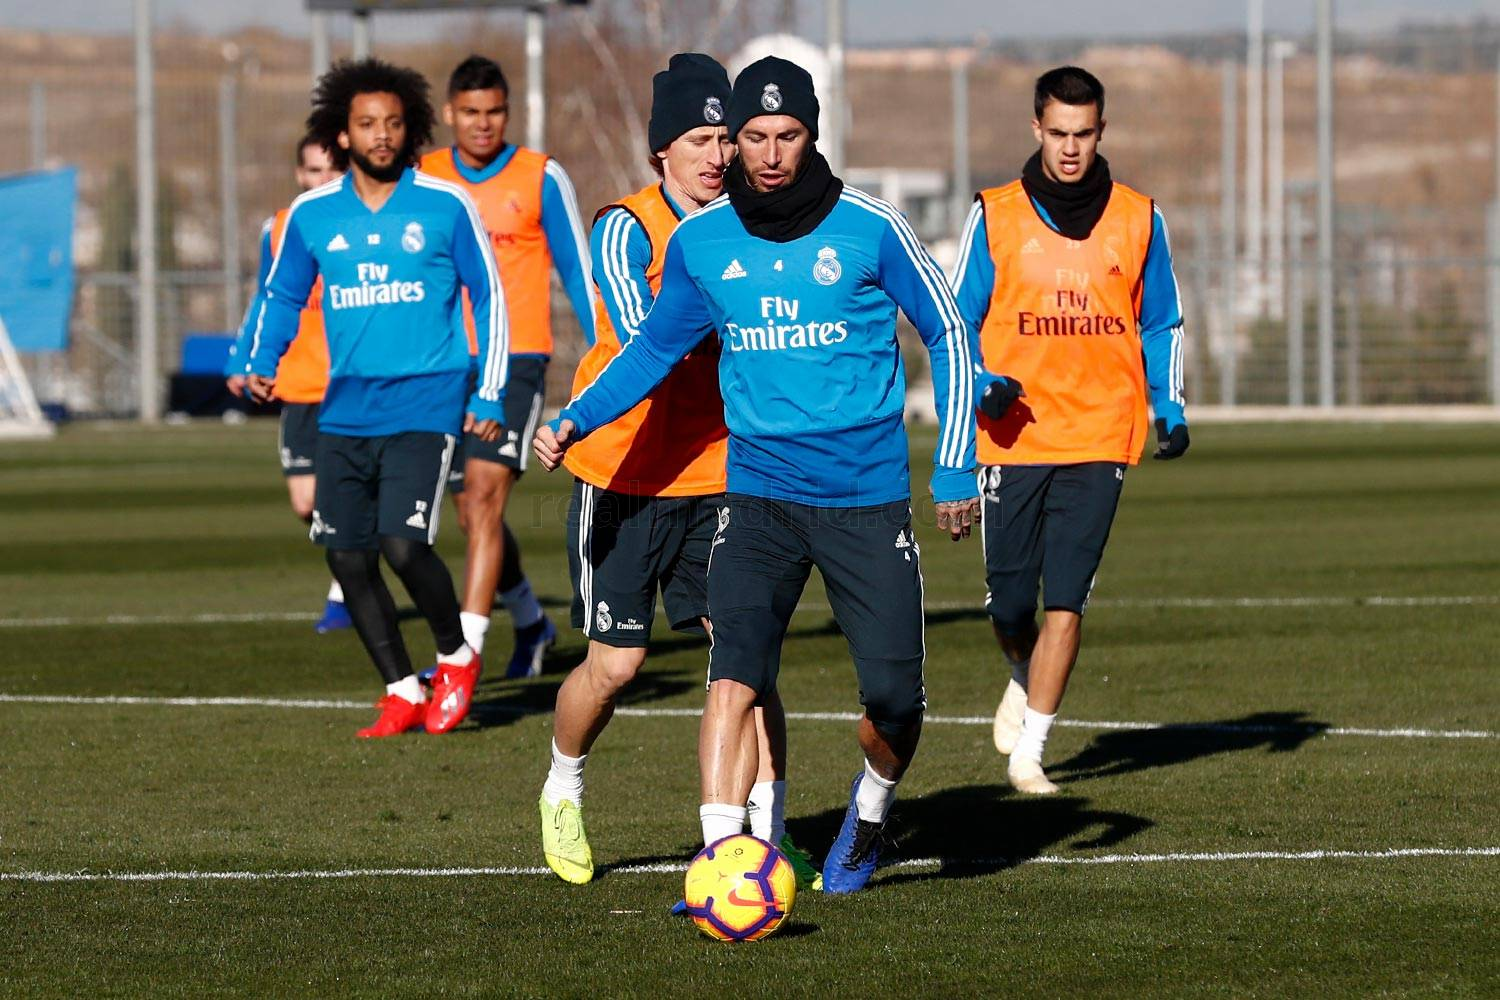 Real Madrid - Entrenamiento del Real Madrid - 11-01-2019